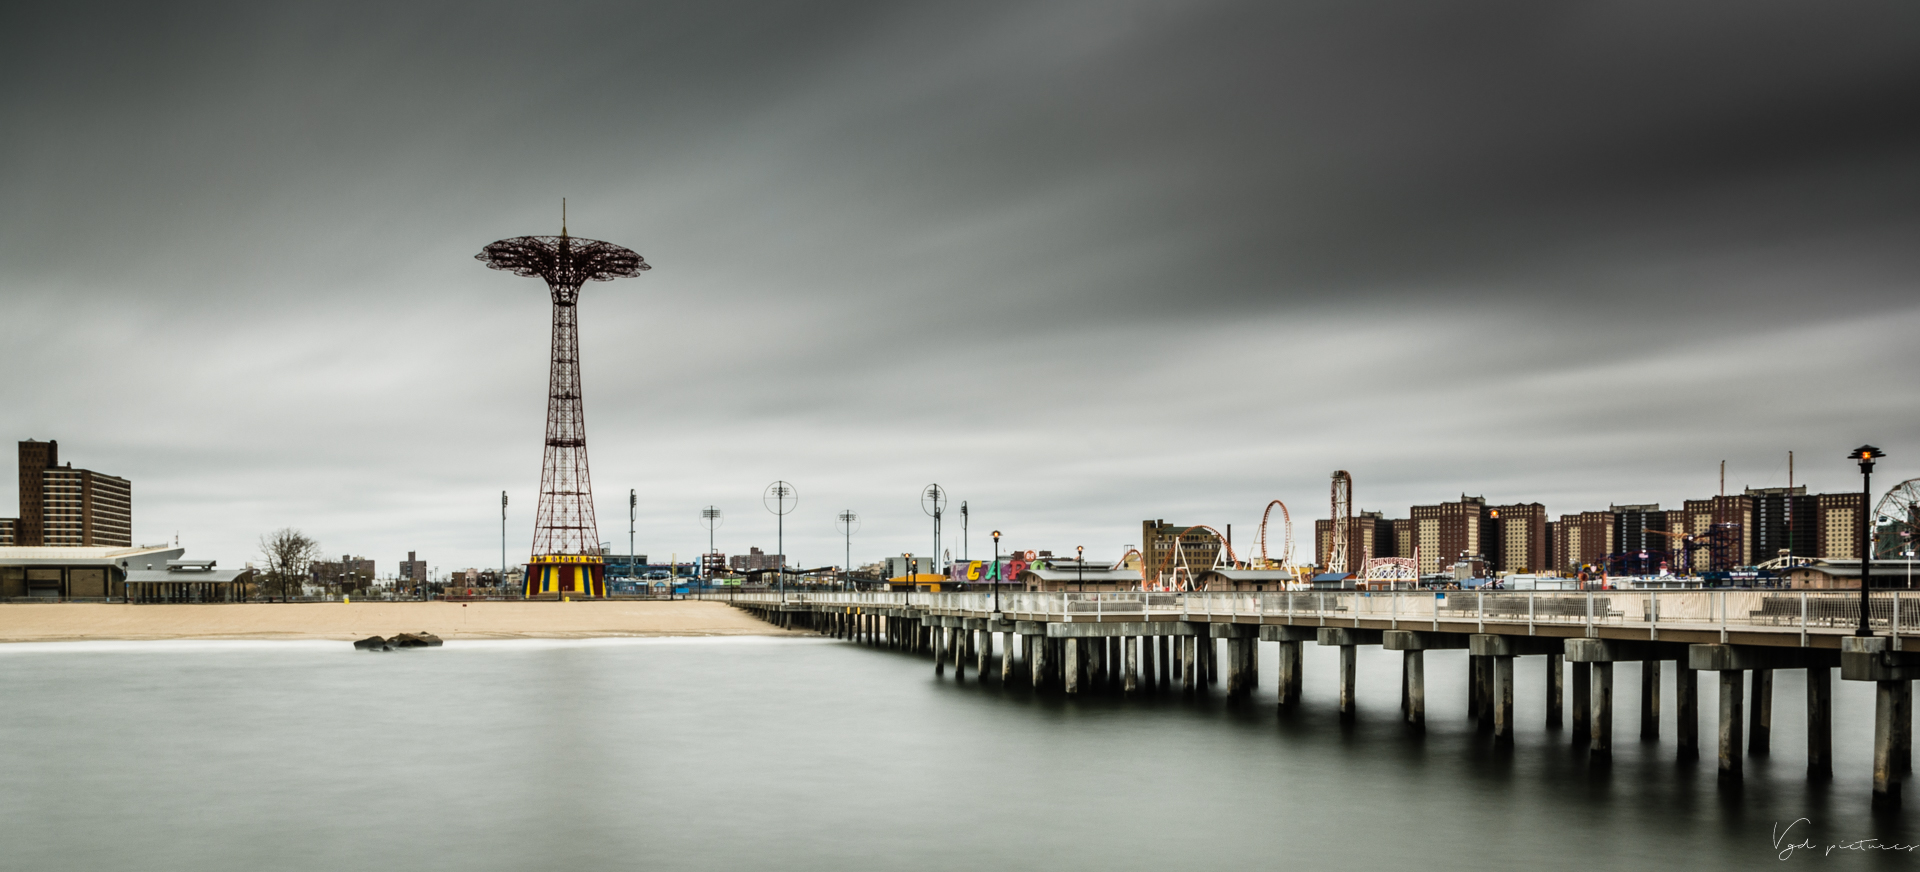 Coney Island in the storm